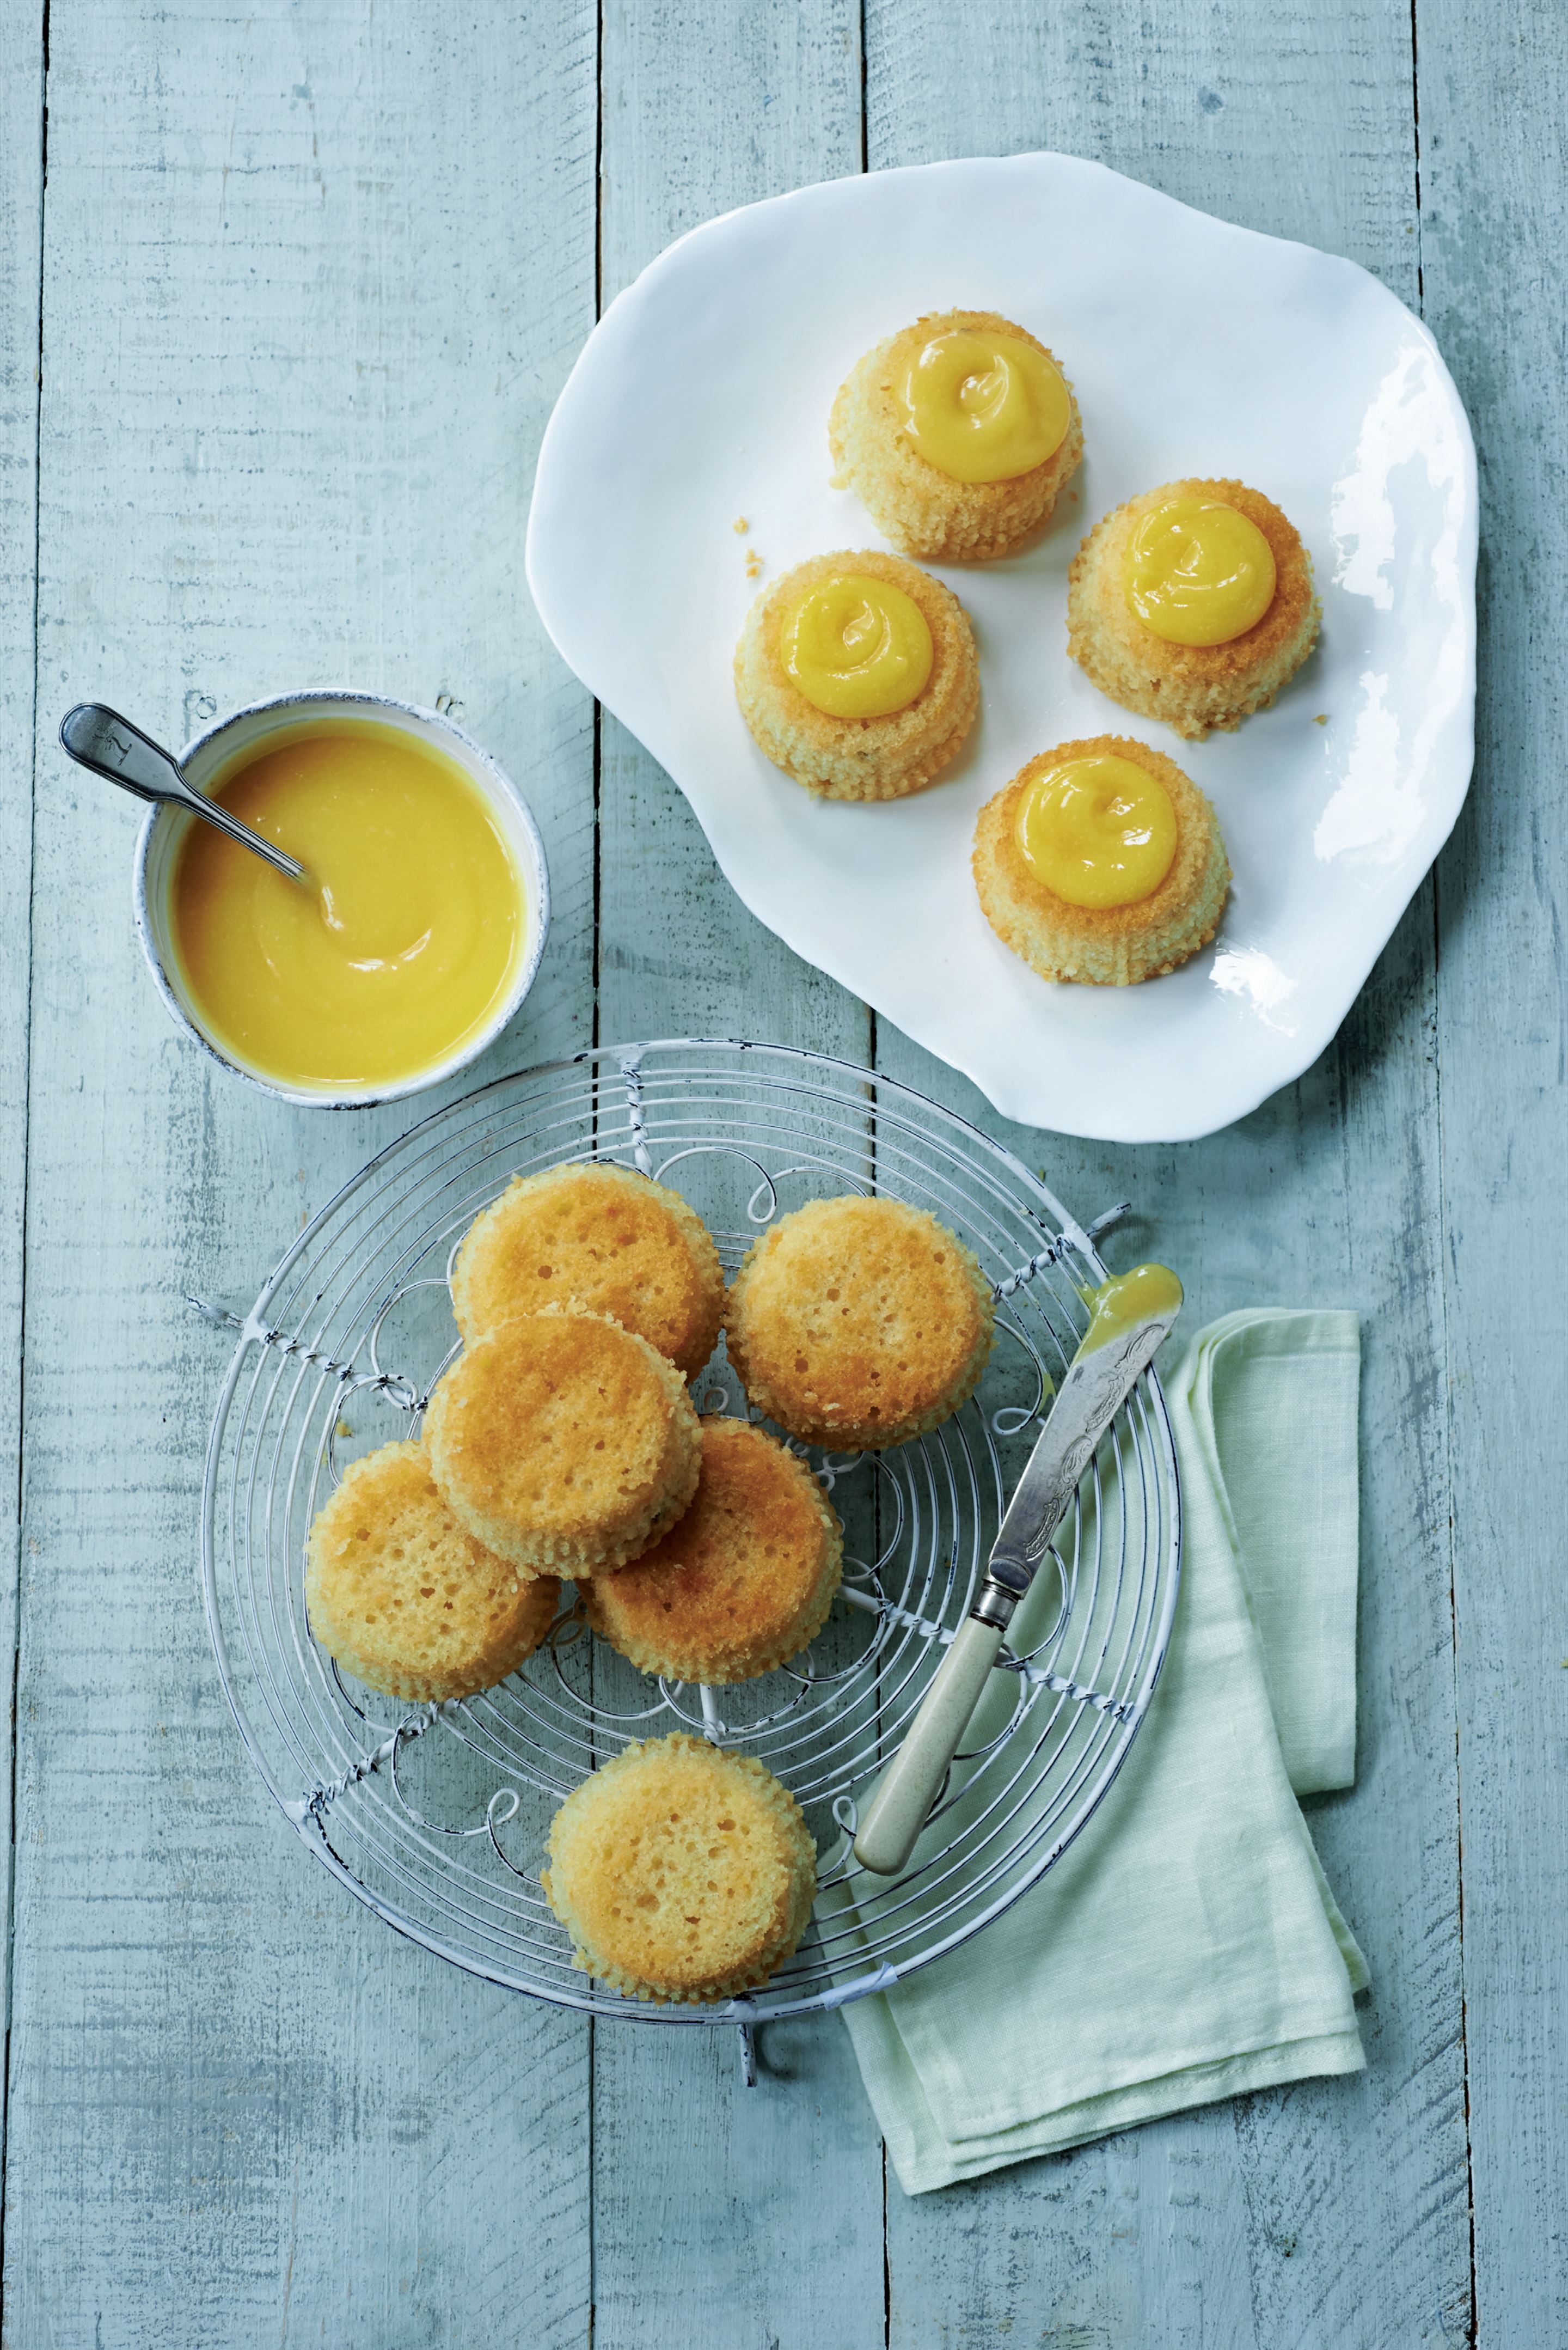 Passion fruit yoghurt cakes